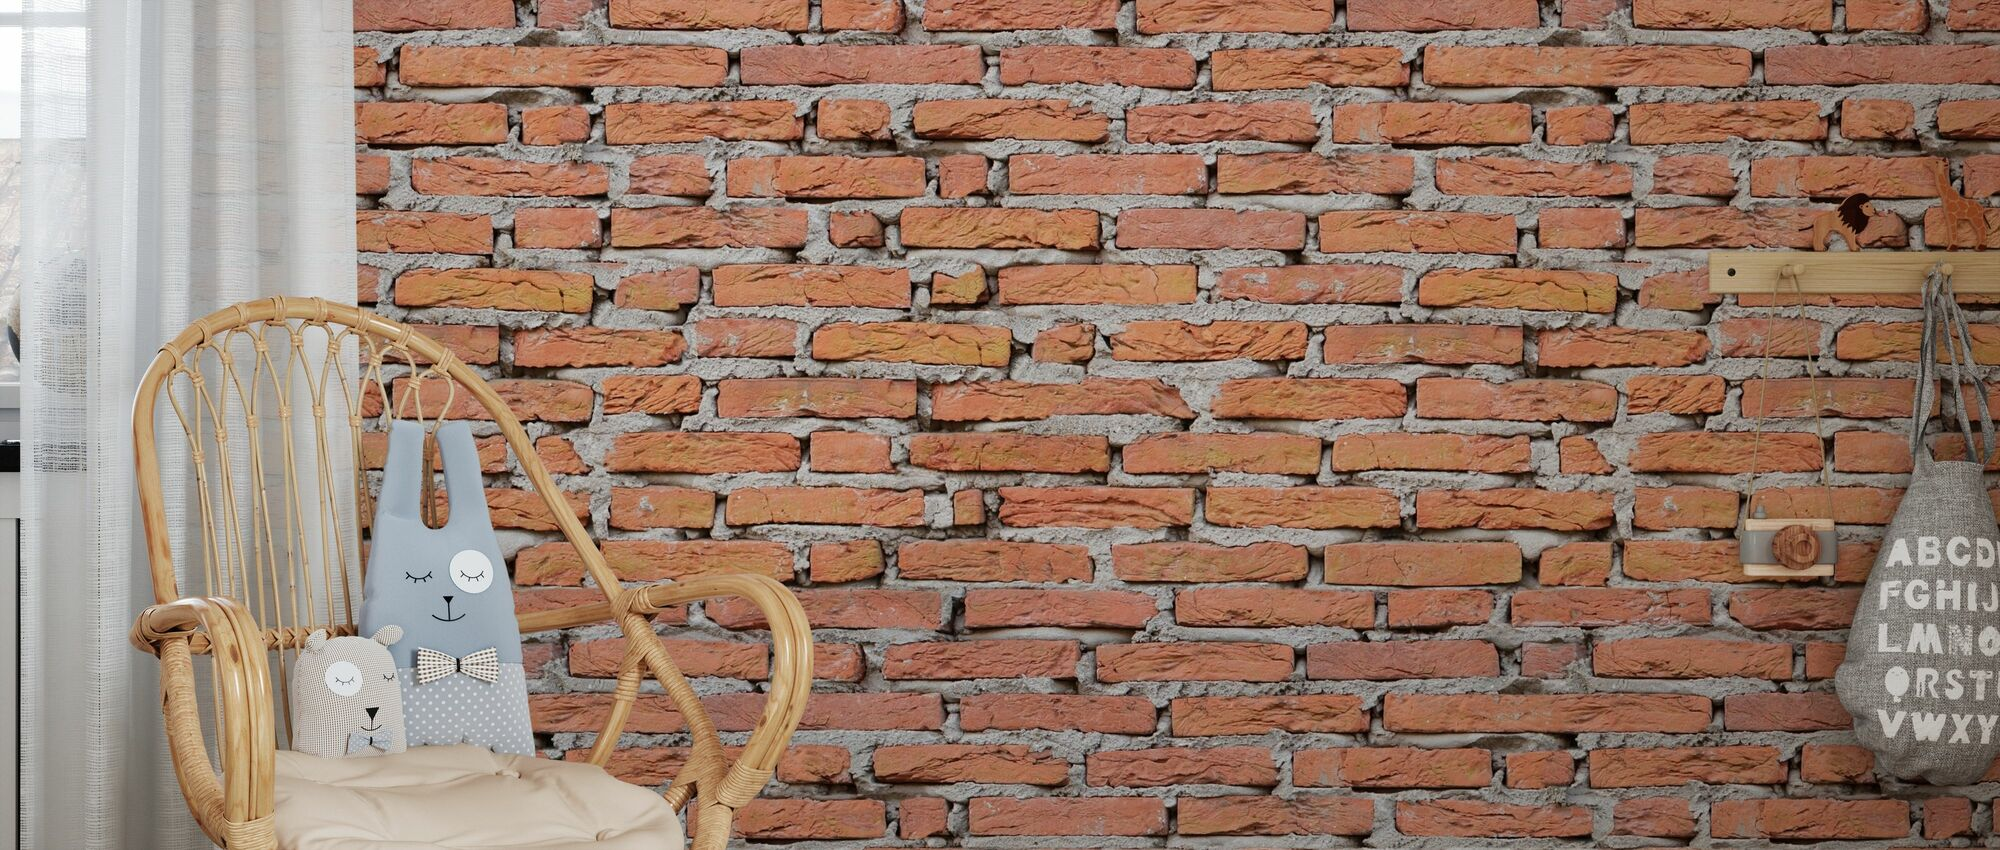 Brick Wall with Strong Joints - Wallpaper - Kids Room